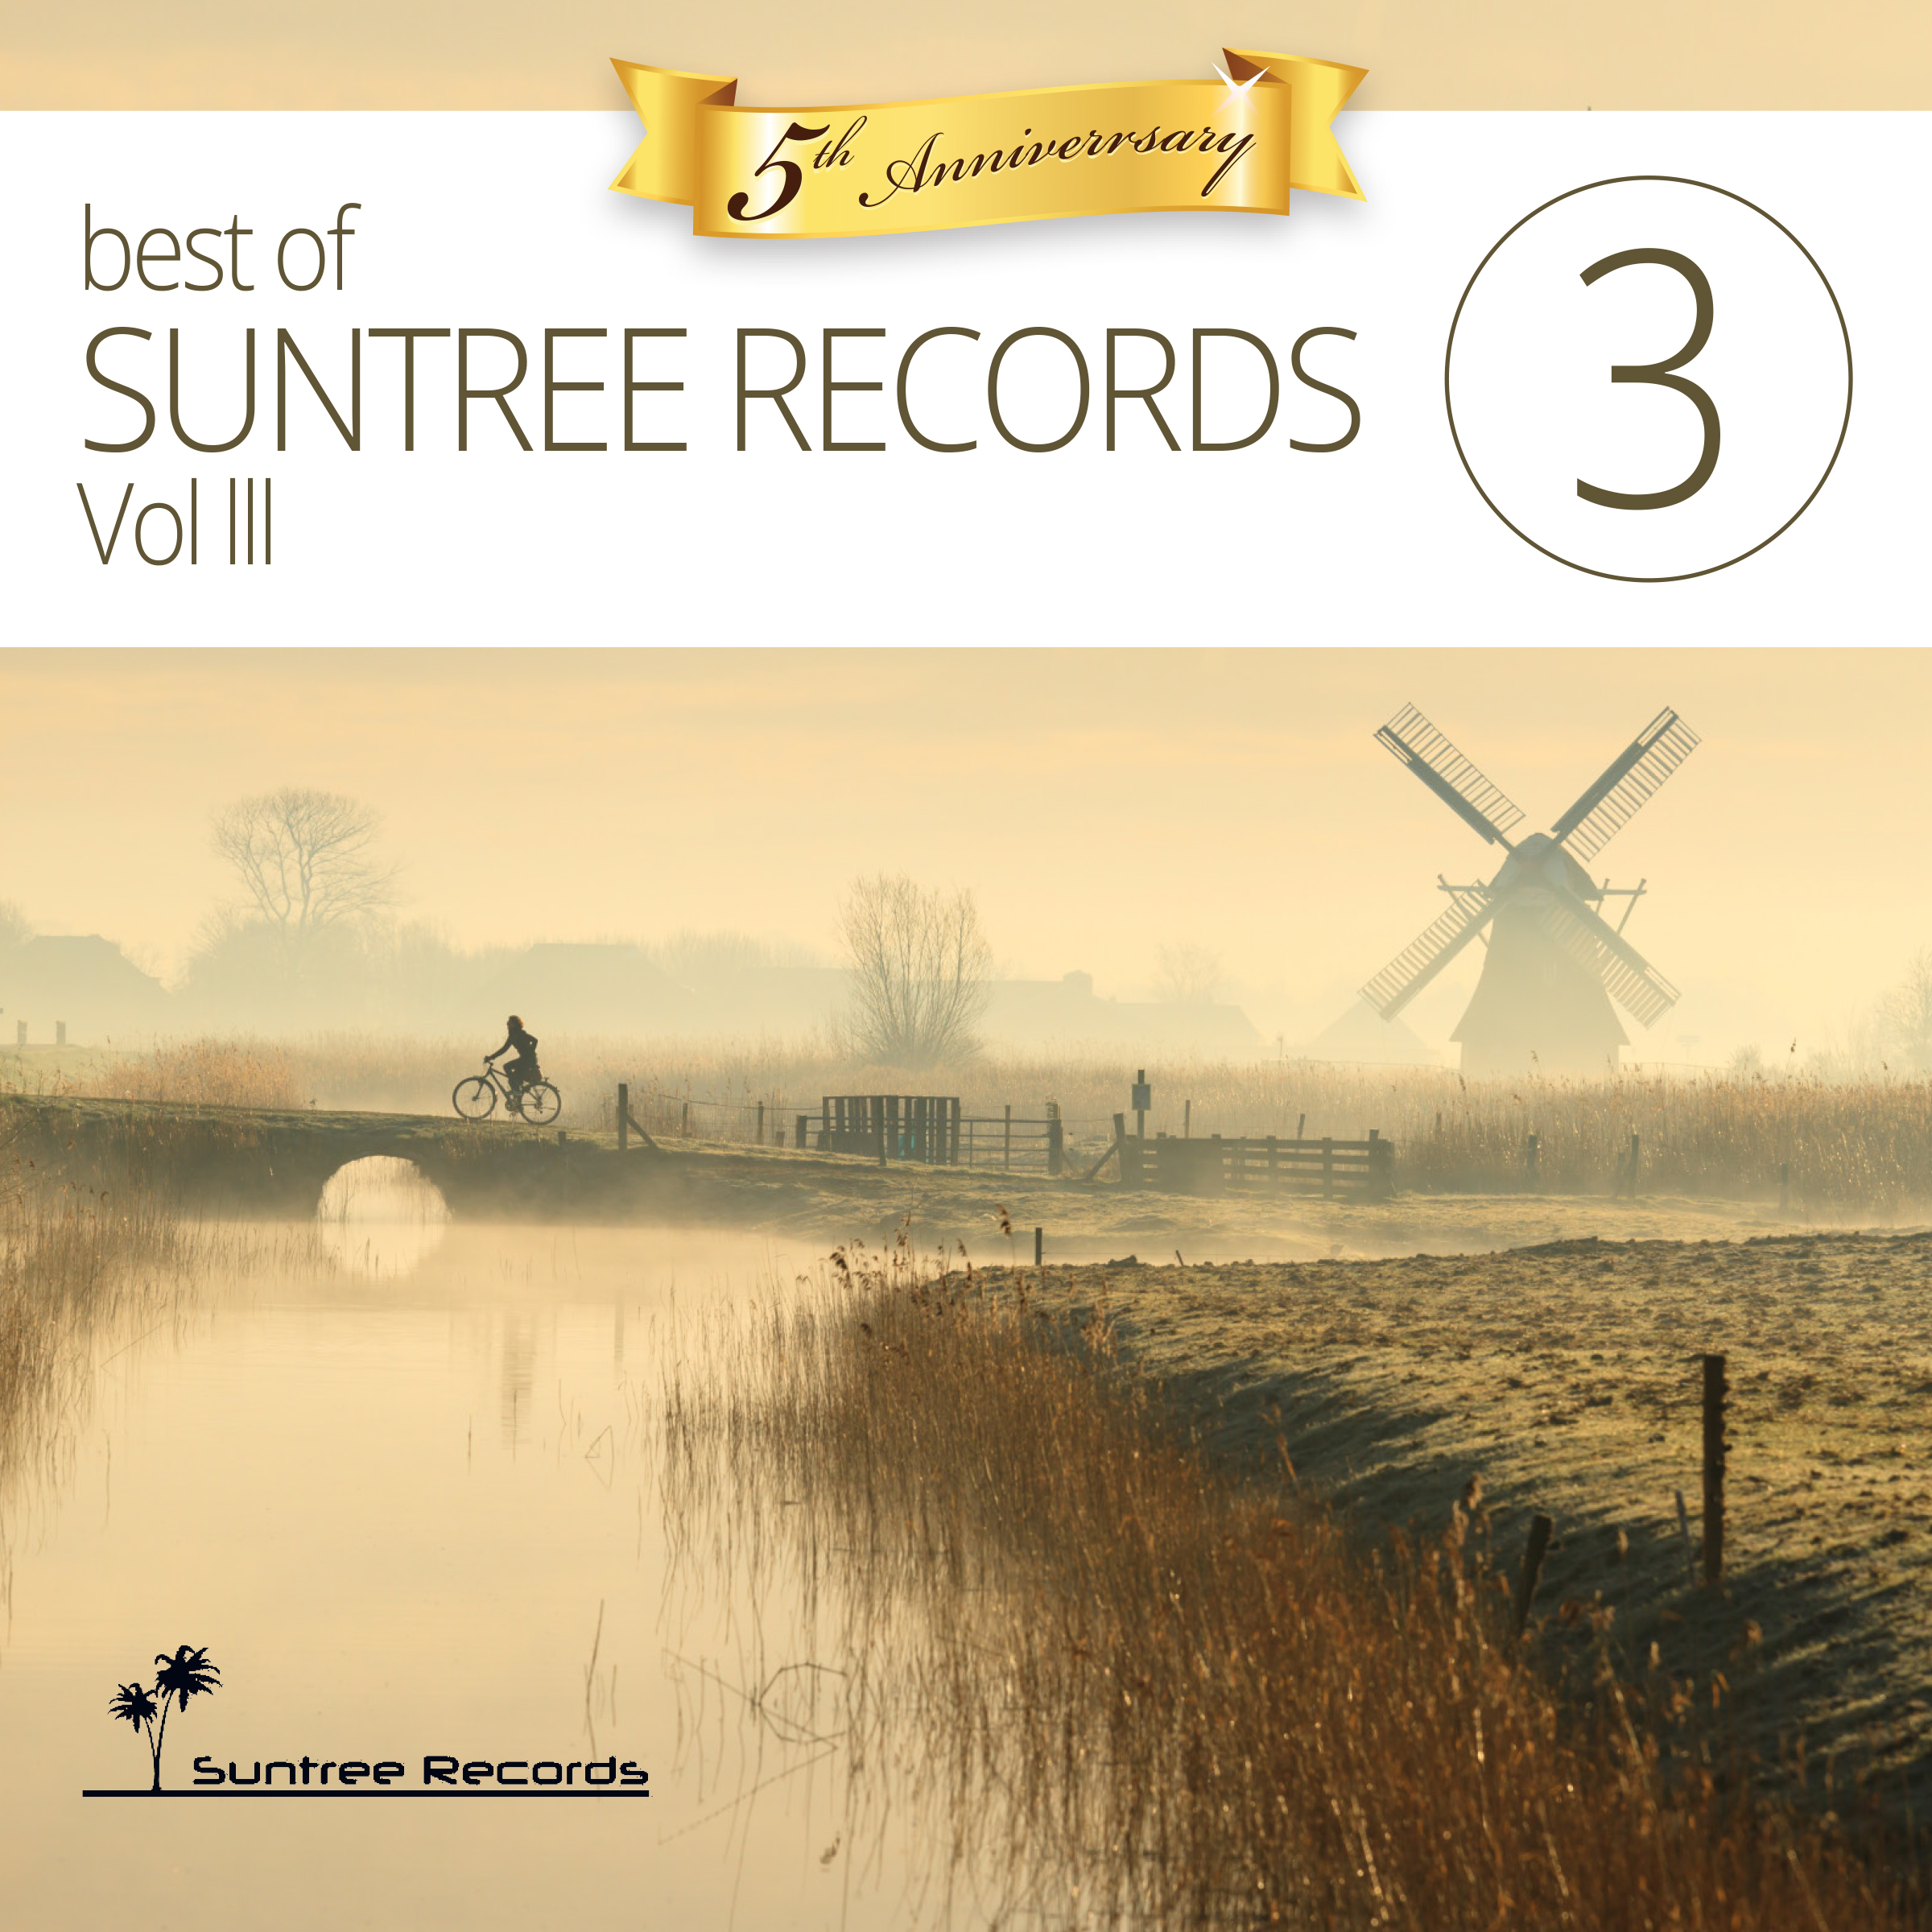 Best of Suntree Records